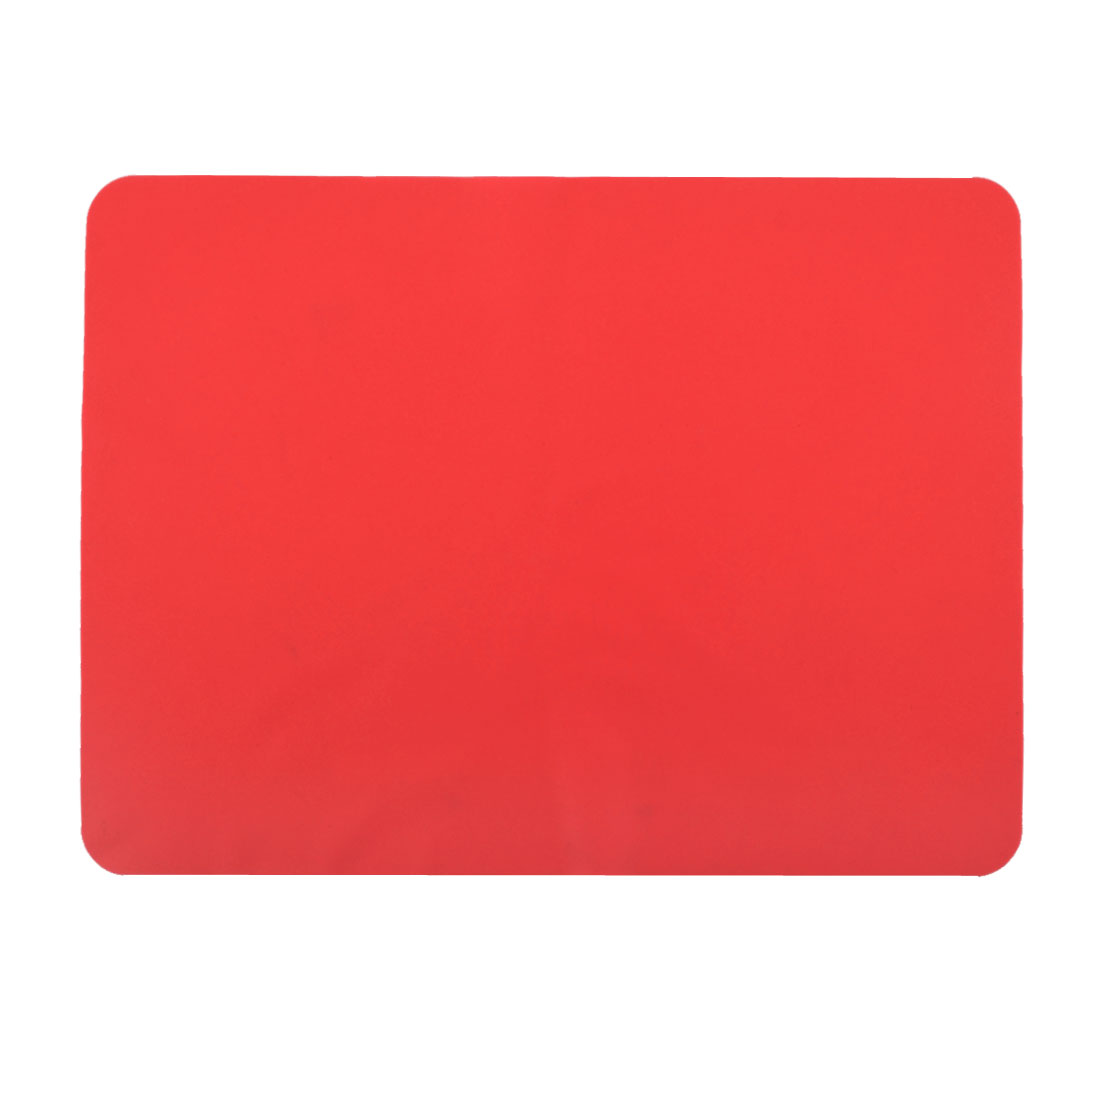 Western Restaurant Silicone Table Heat Resistant Mat Cushion Placemat Red